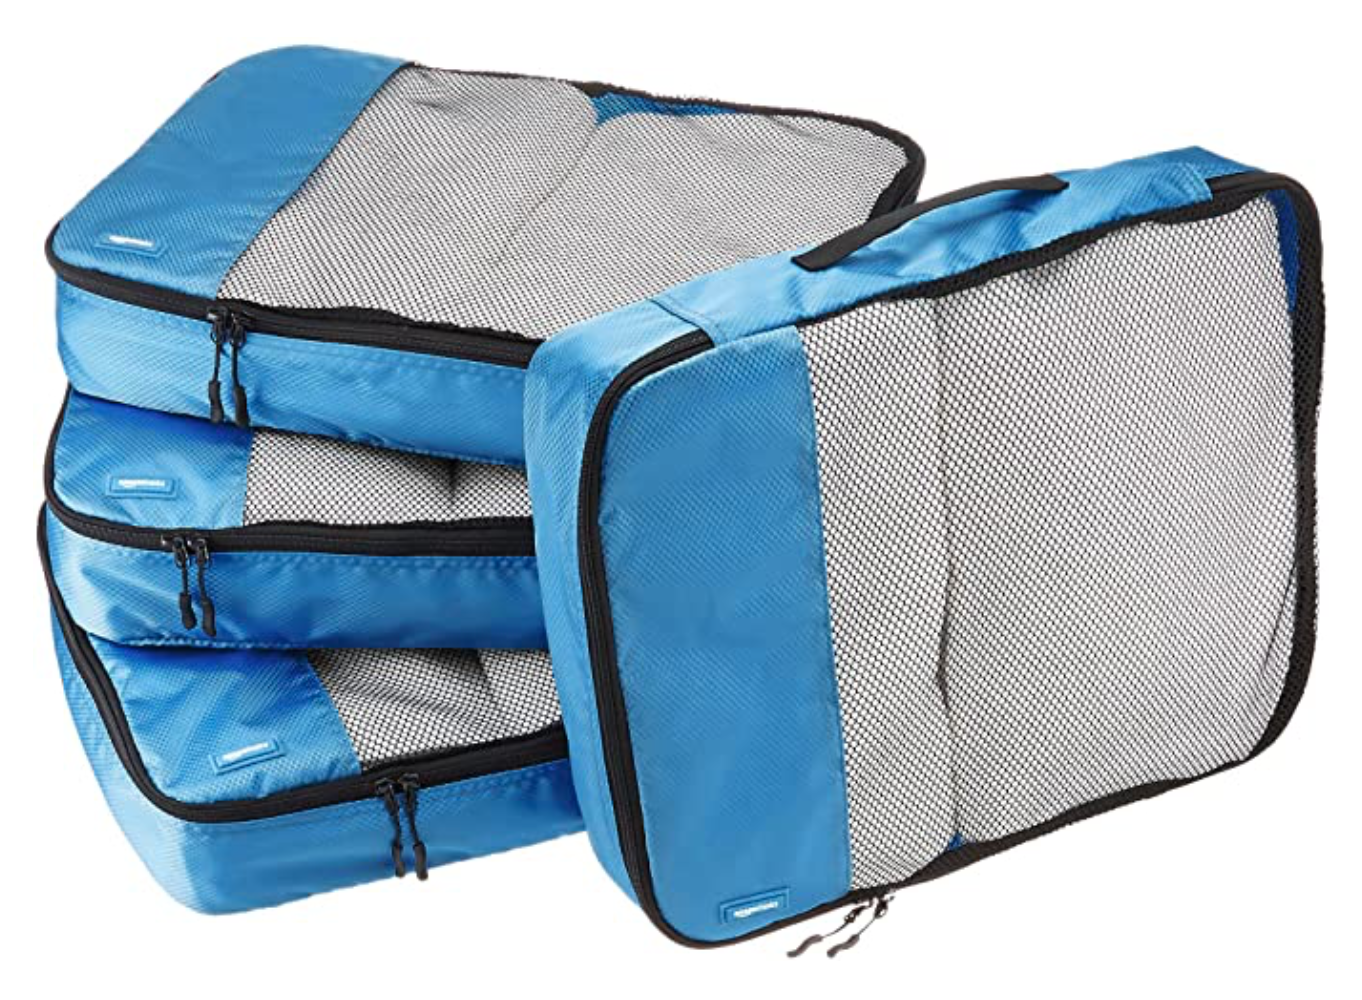 blue and grey zip bags